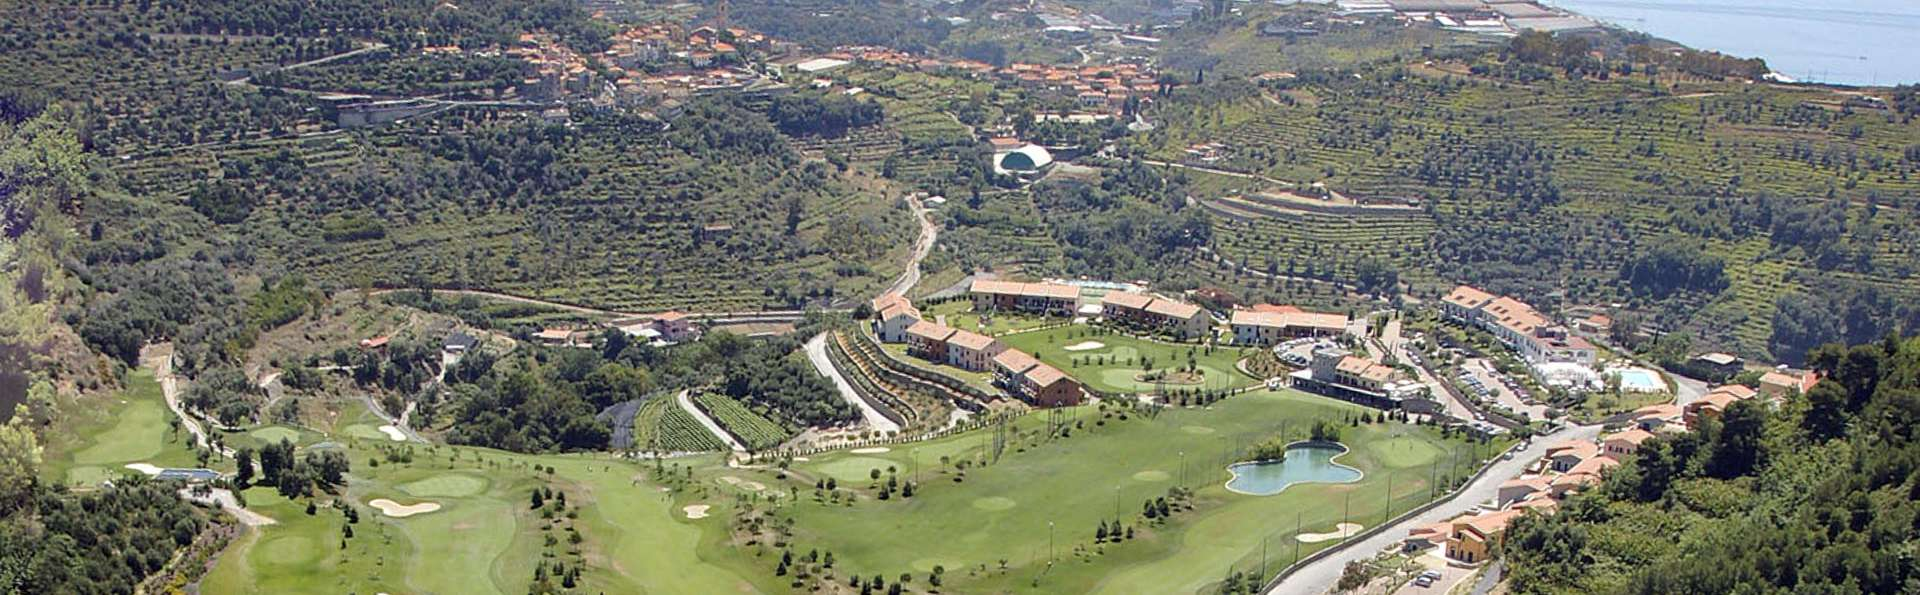 Castellaro Golf Resort - EDIT_AERIAL_01.jpg